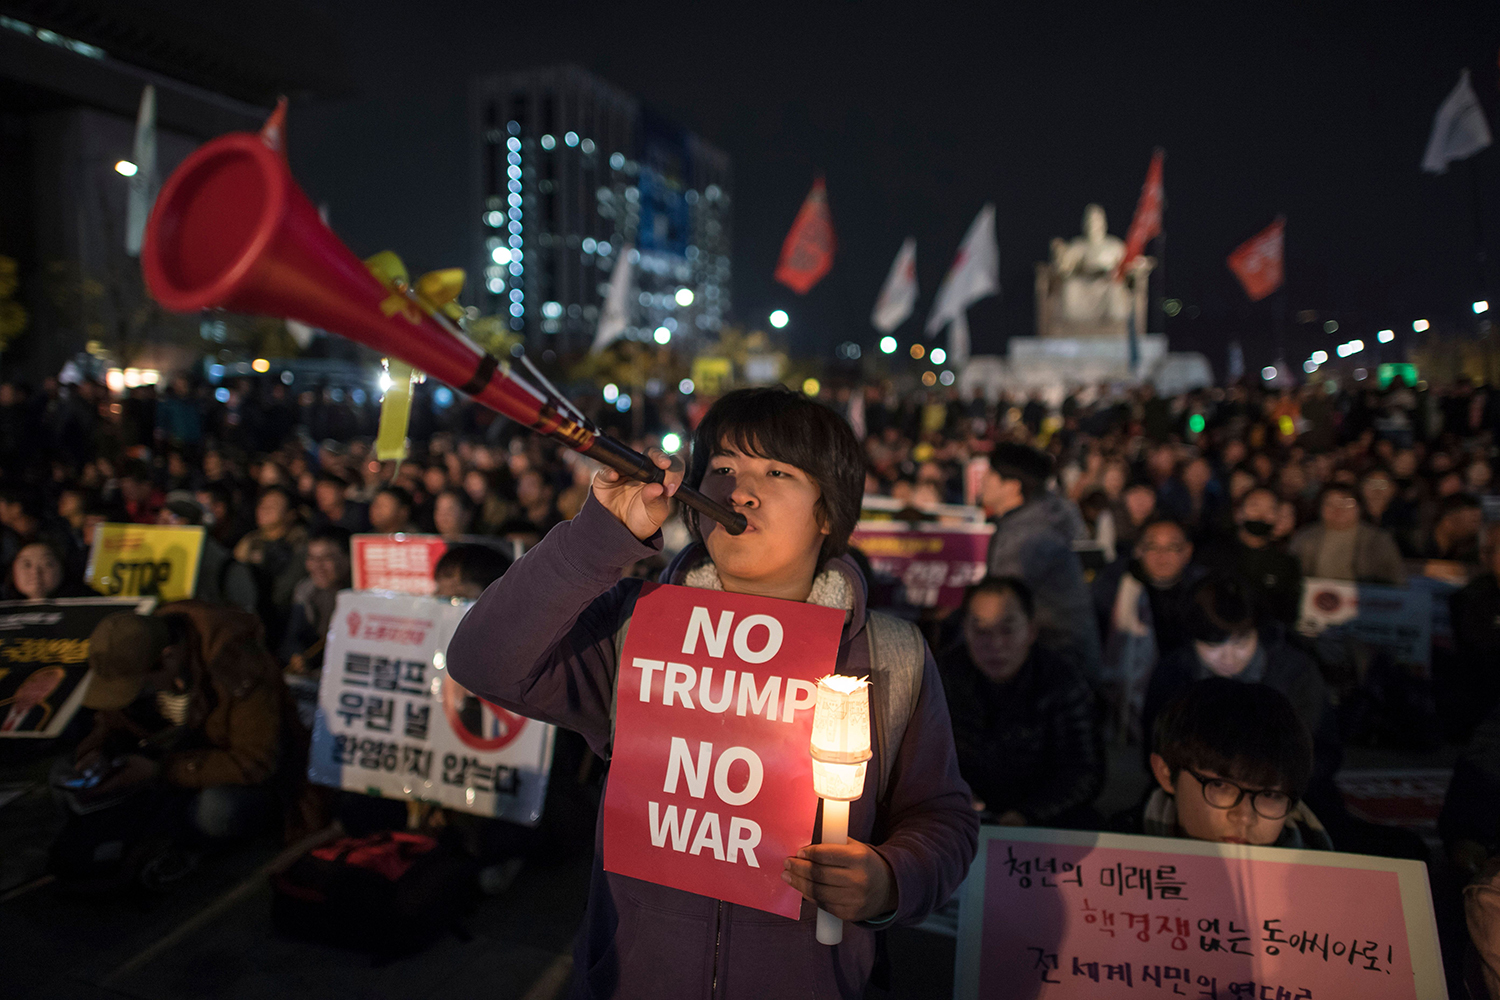 Protesters against US President Donald Trump gather during a rally in the Gwanghwamun area of central Seoul on Nov. 7. Ed Jones/AFP/Getty Images